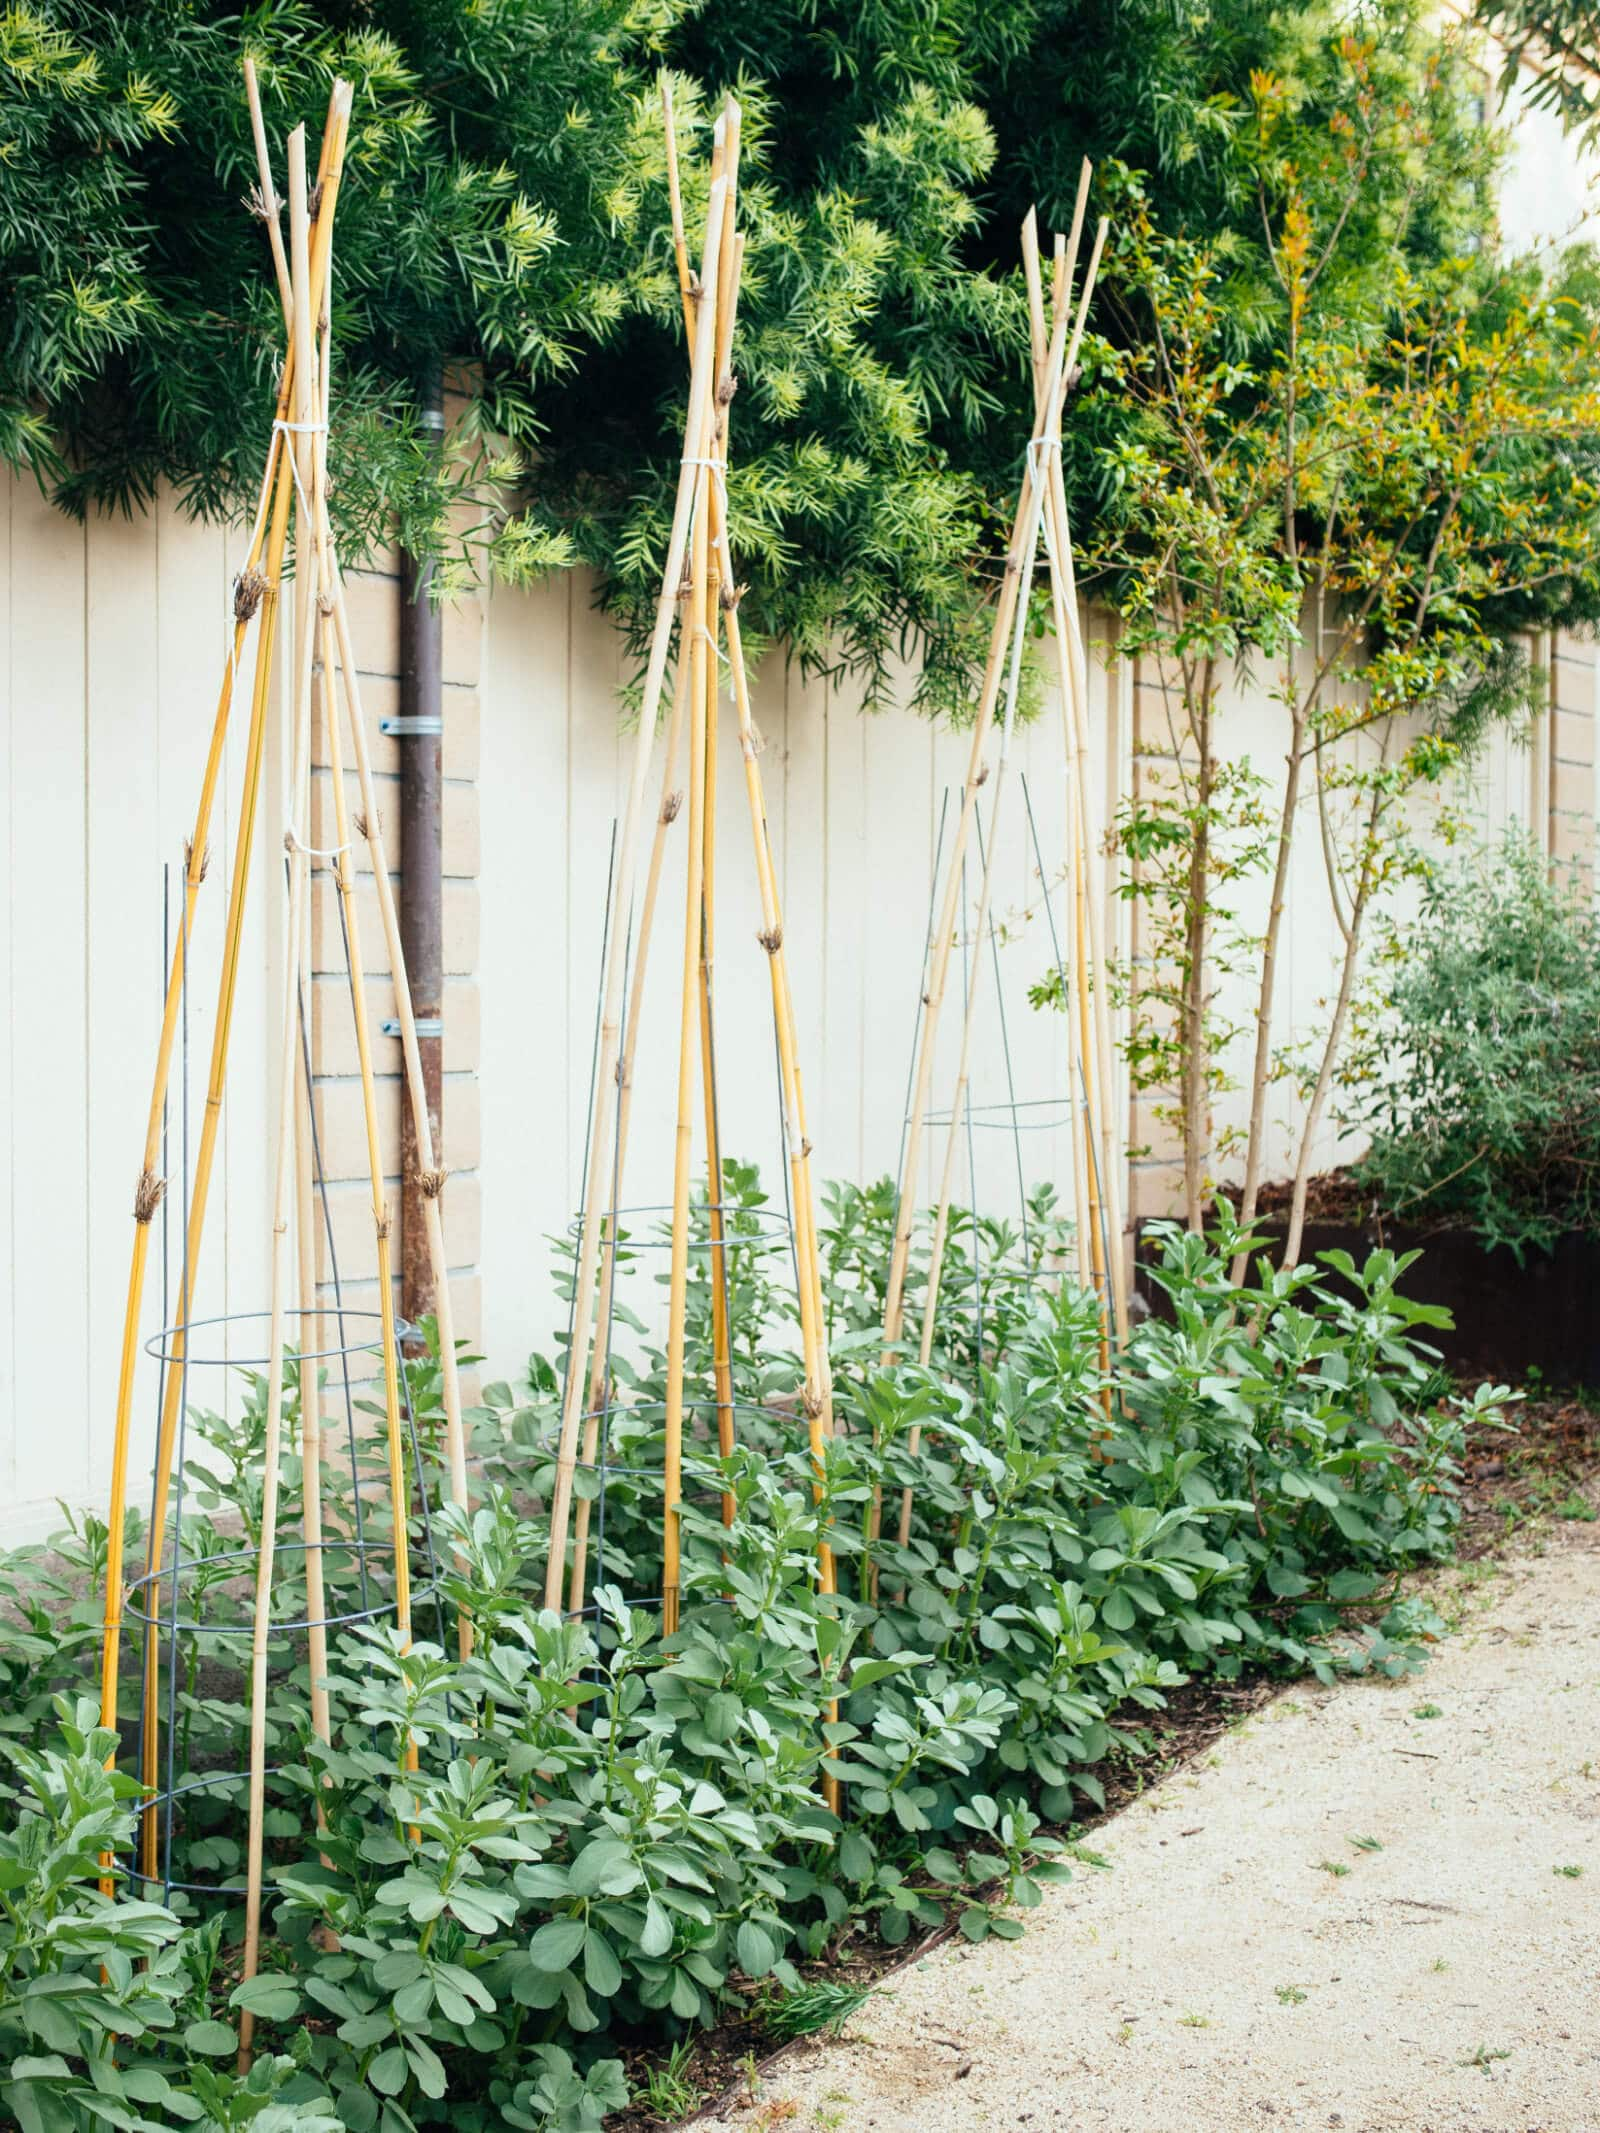 Fava bean plants grow tall and lanky and need support from stakes or cages